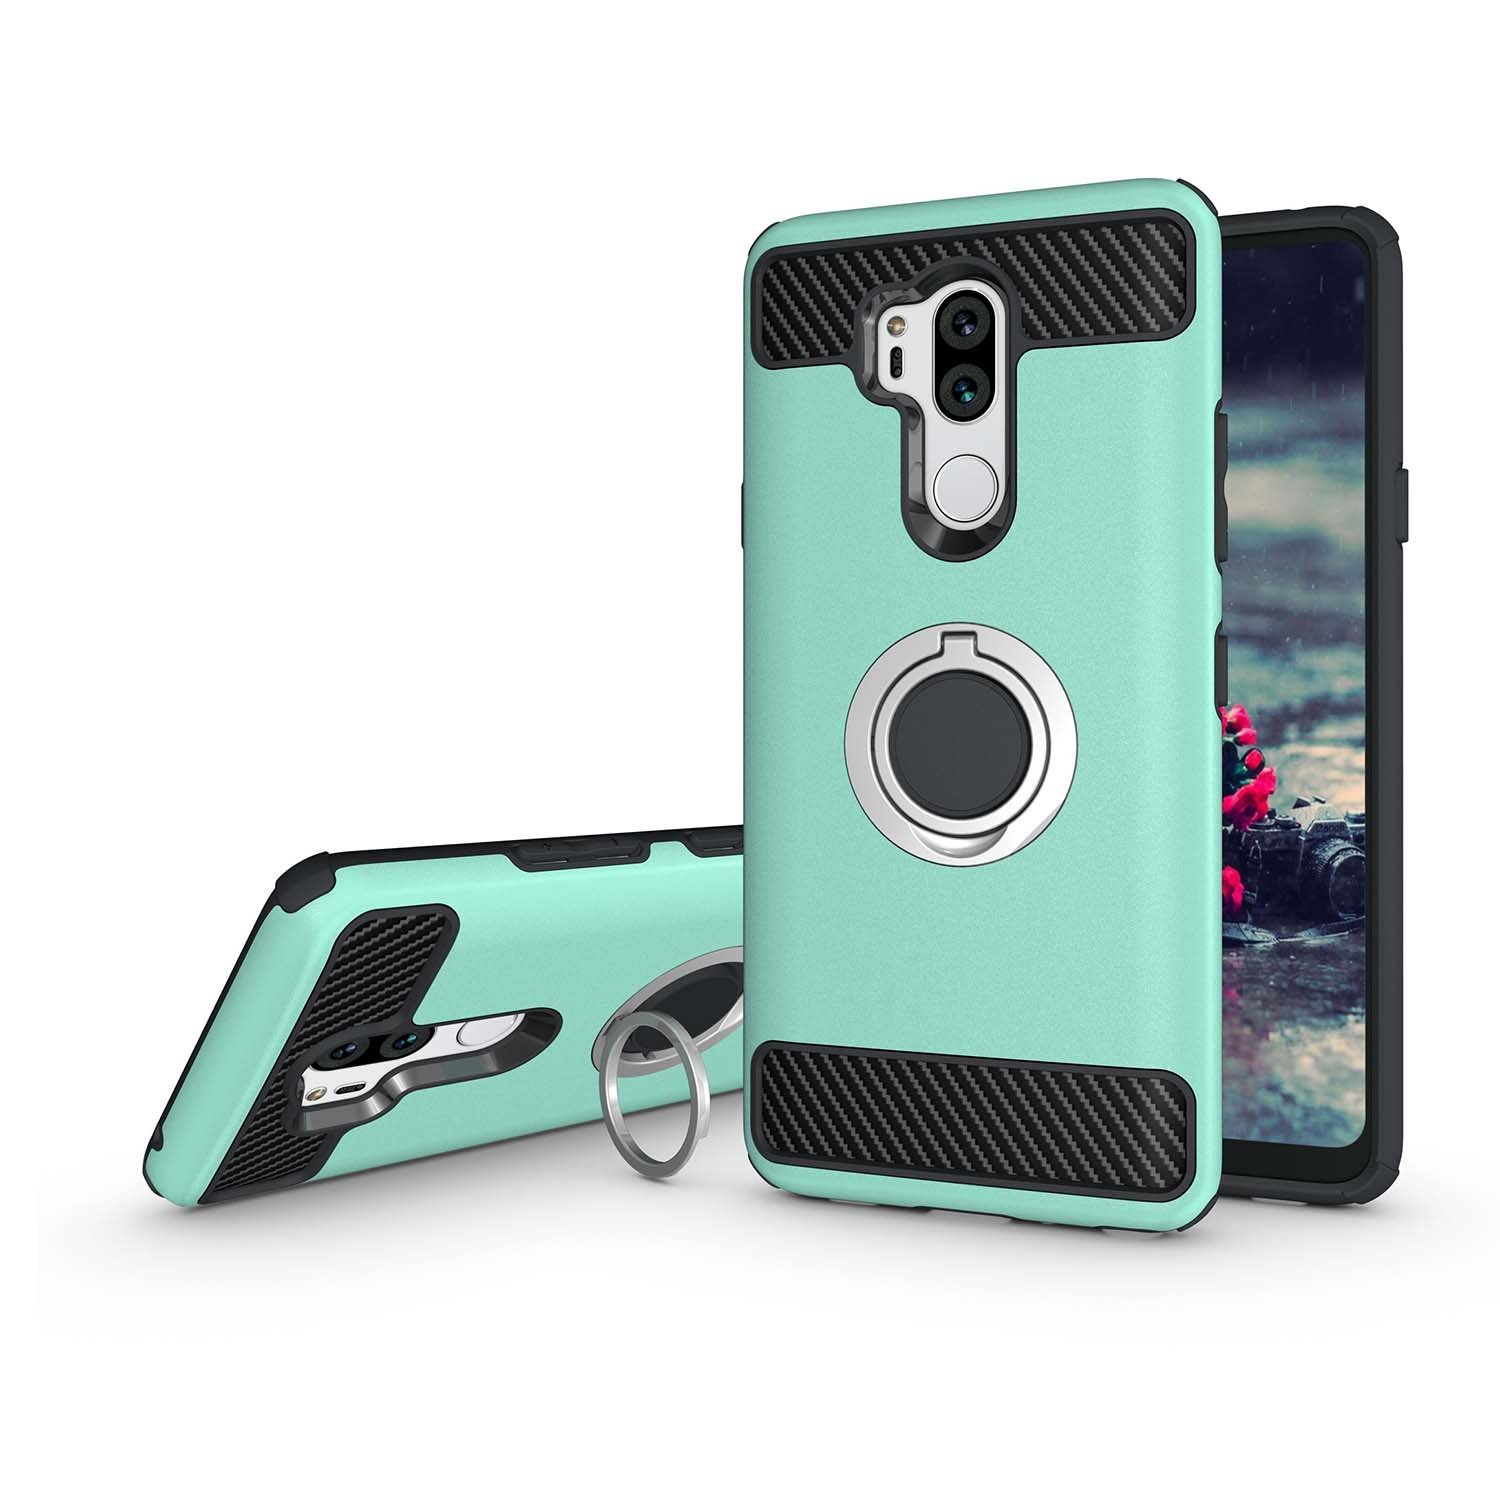 Newseego Compatible with LG G7 ThinQ Case,LG G7 Case with Armor Dual Layer 2 in 1 with Extreme Heavy Duty Protection and Finger Ring Holder Kickstand Fit Magnetic Car Mount for LG G7 ThinQ -Green